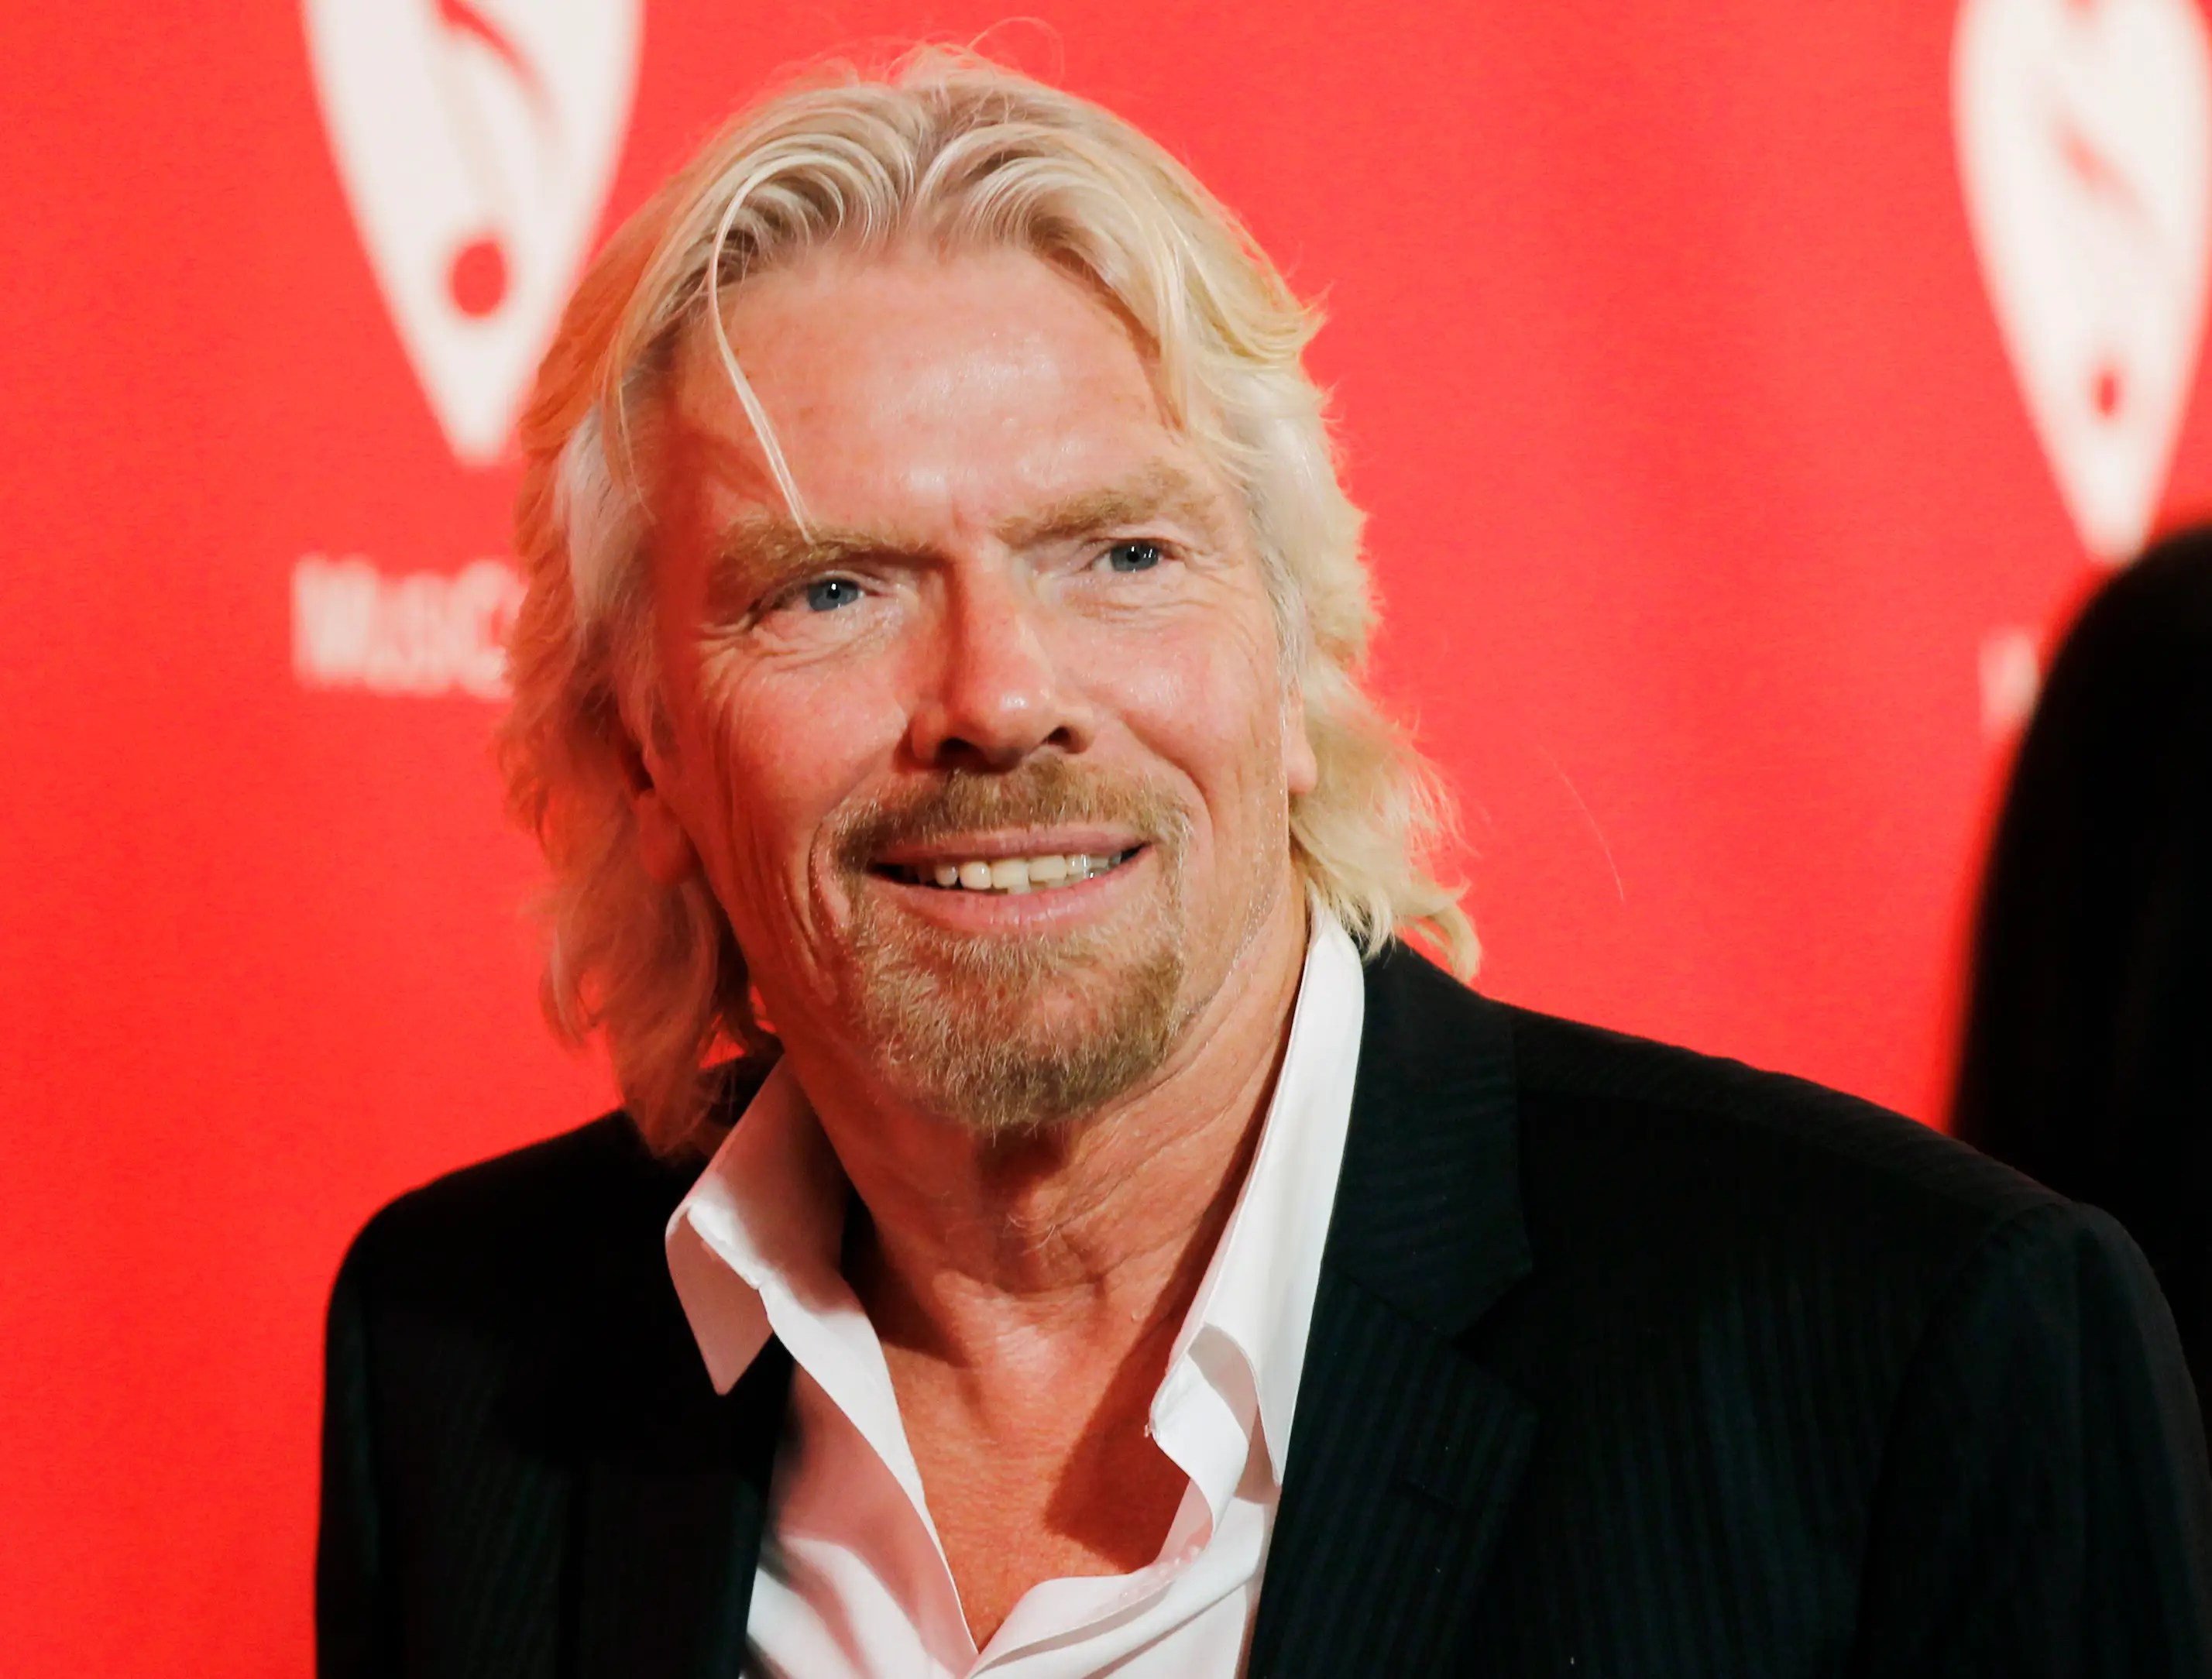 Billionaire Richard Branson believes success is about engagement.